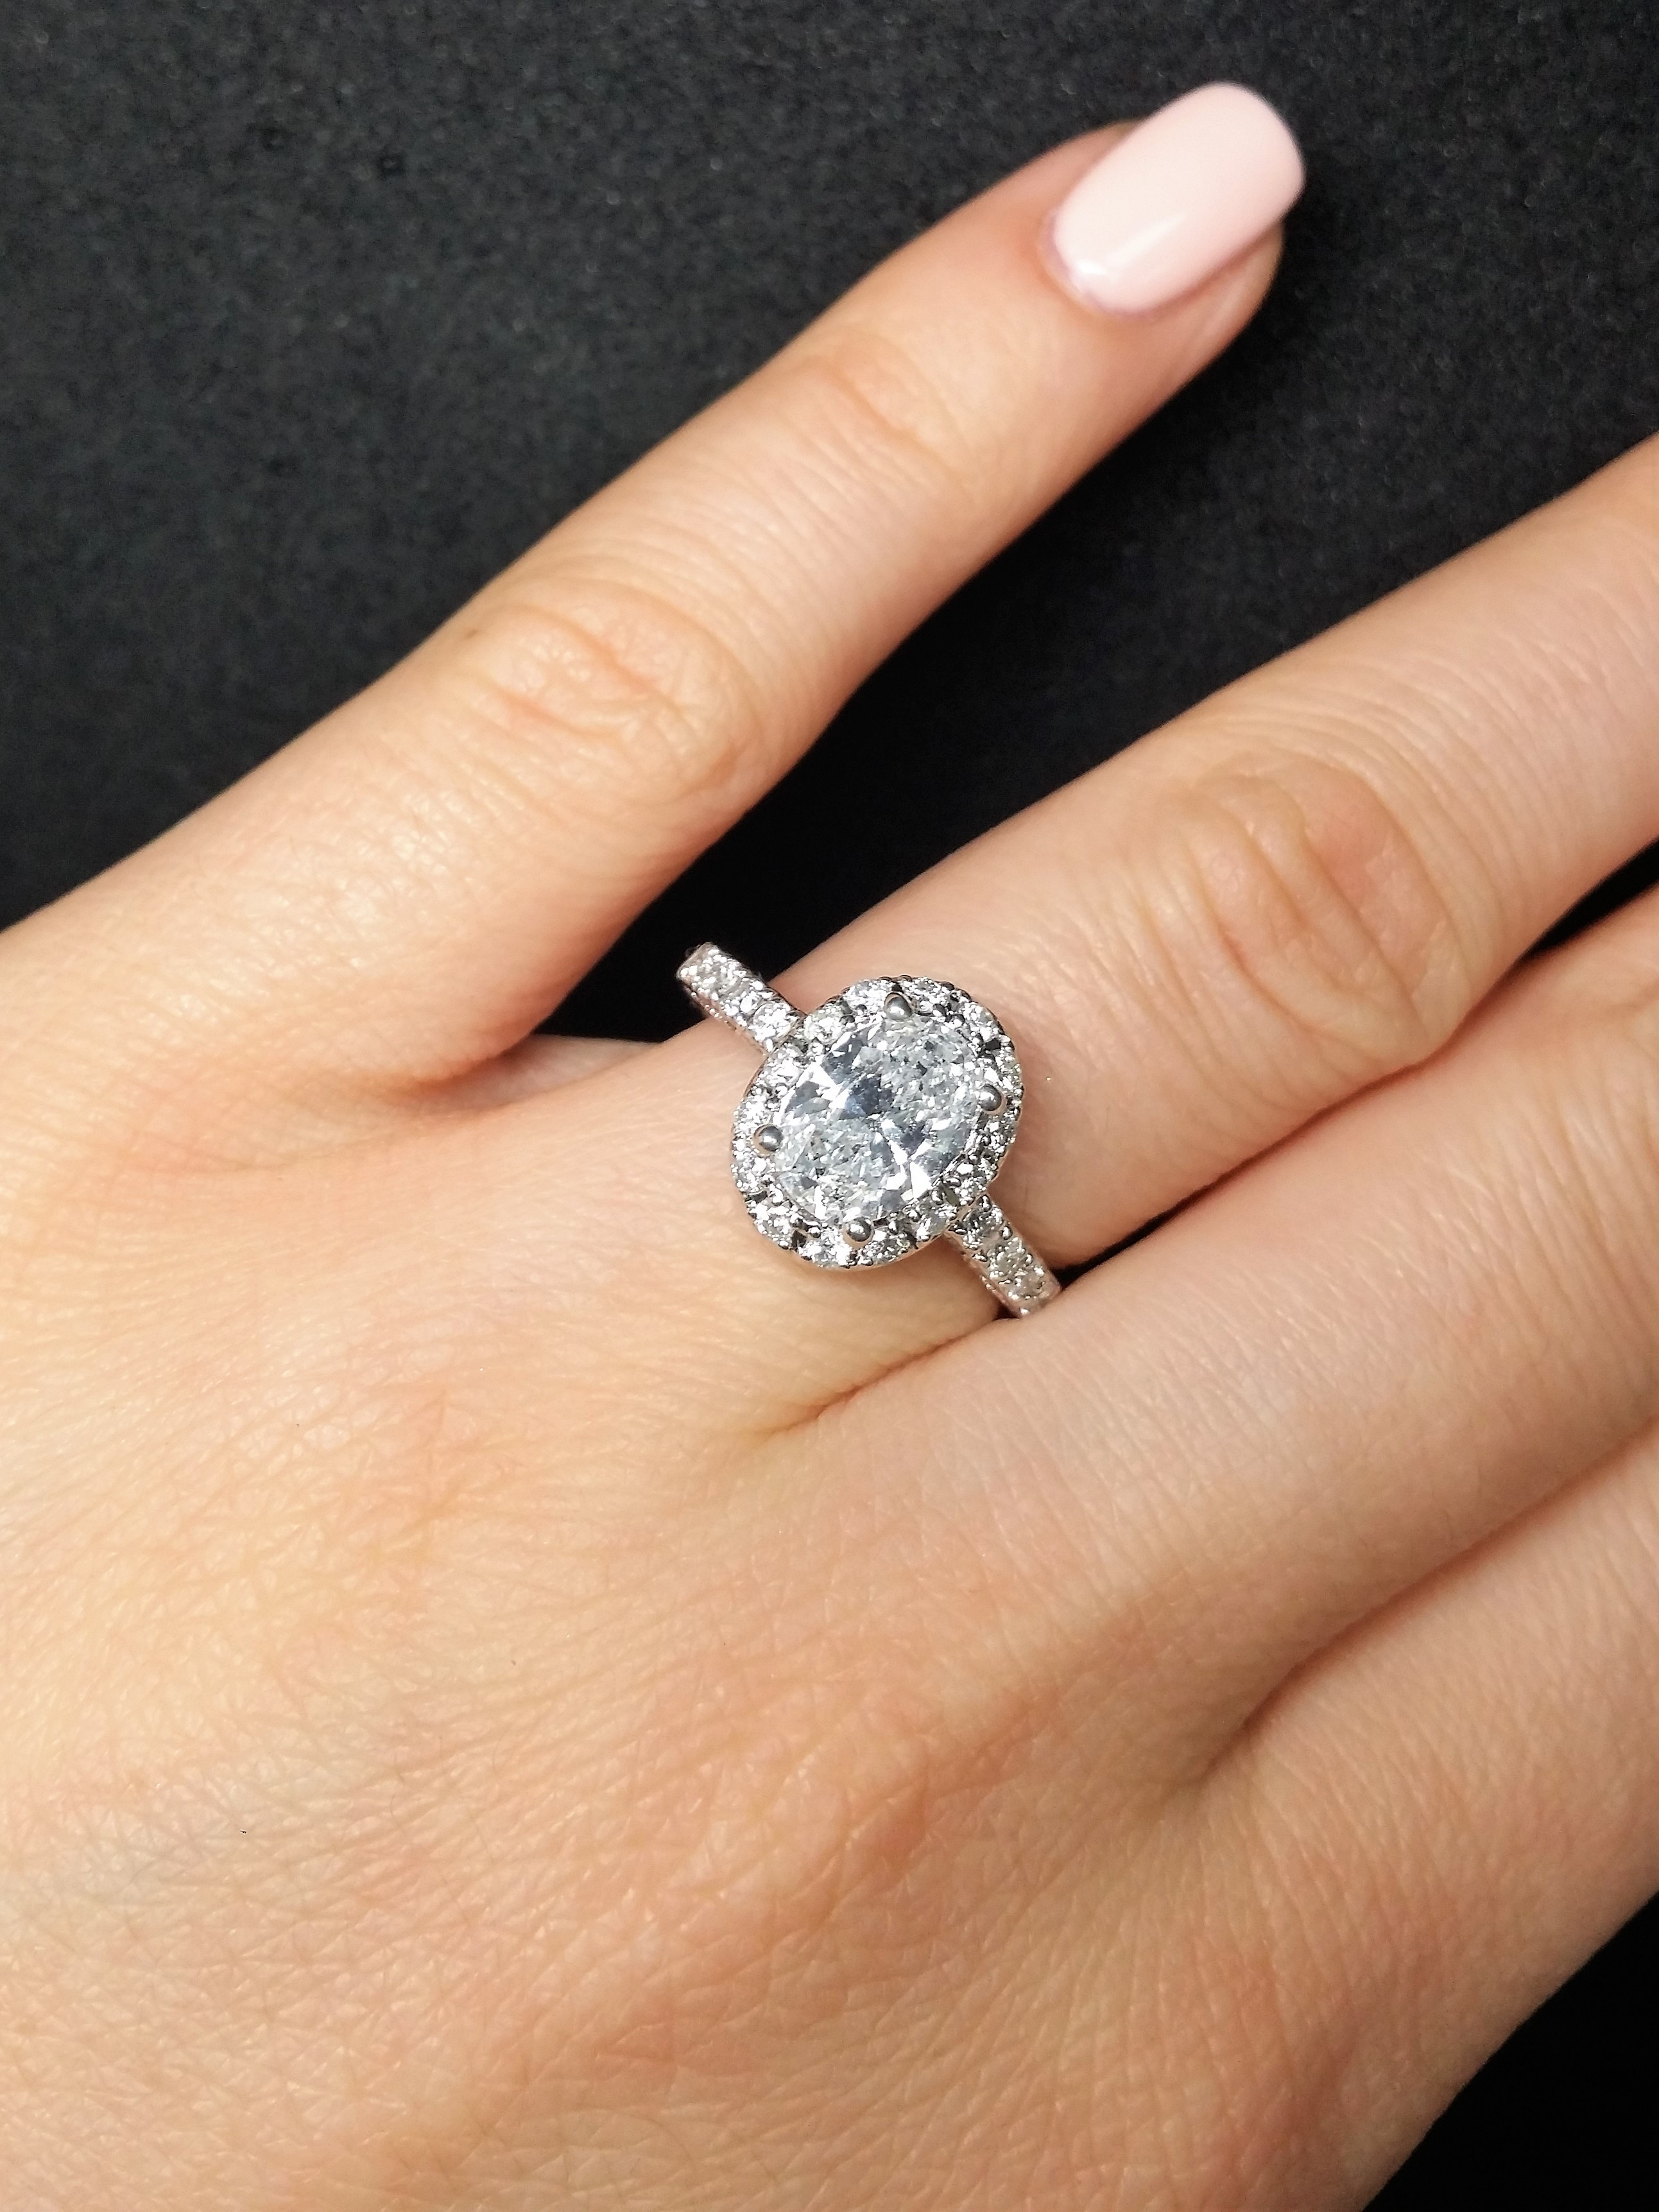 Sparkling and elegant 1.24ct halo engagement diamond ring 2.04tcw